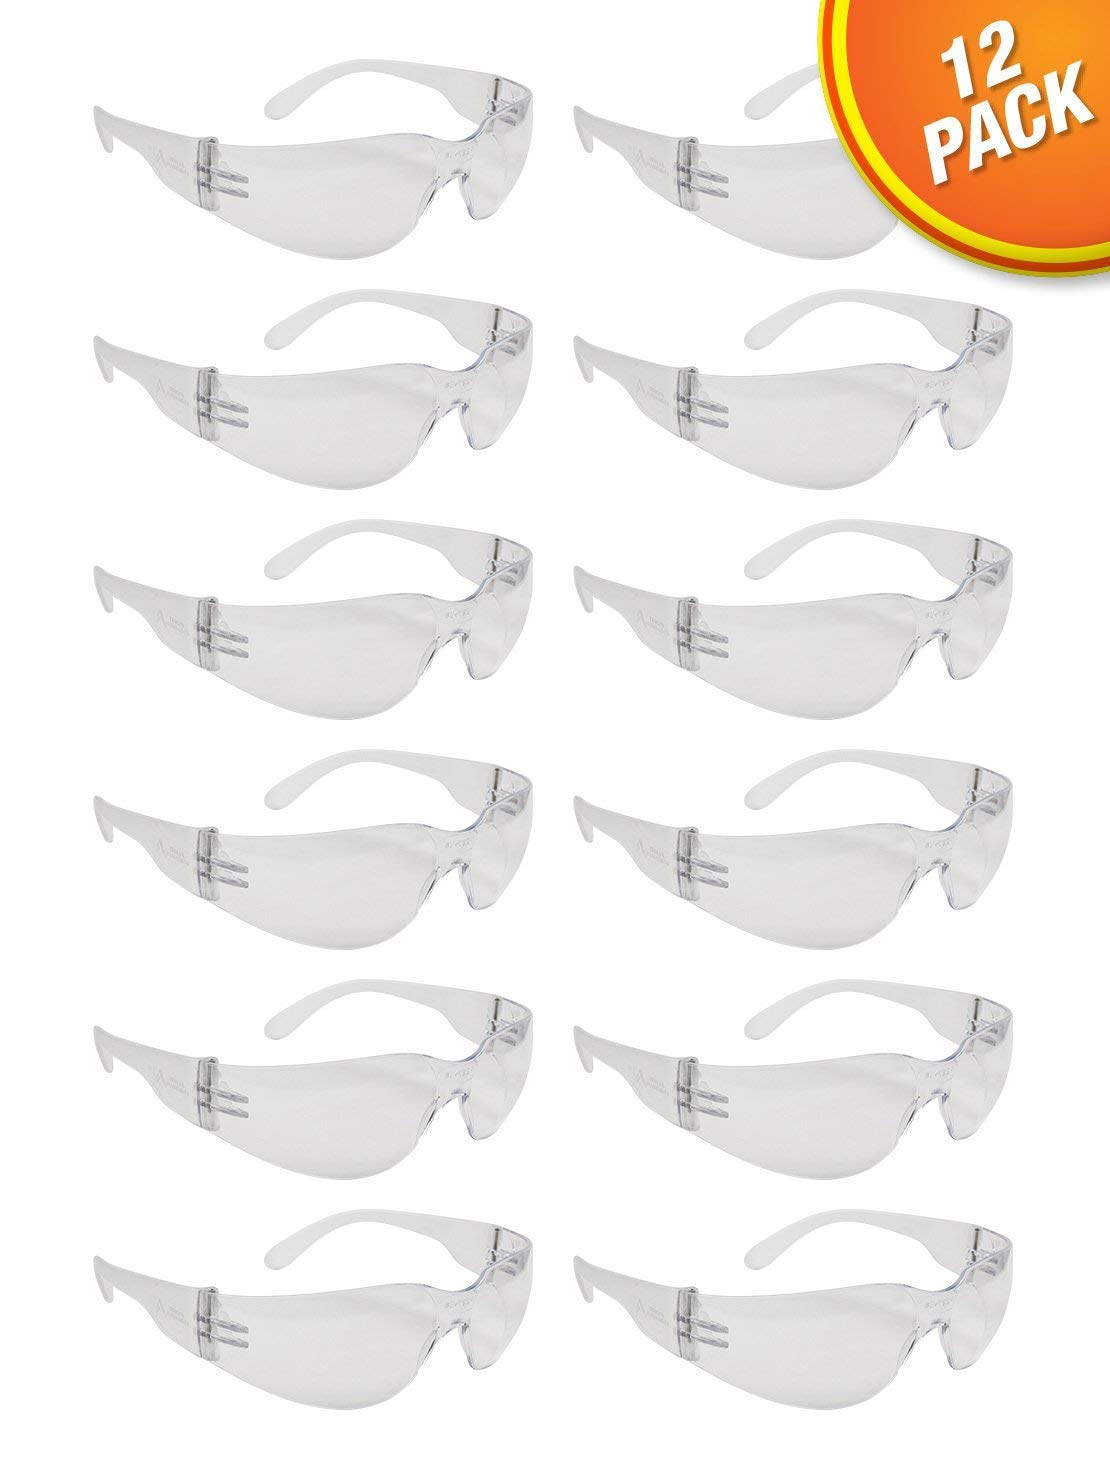 Clear Frame Safety Glasses, One Size, Anti-Scratch, Impact Resistance (12 Pack)